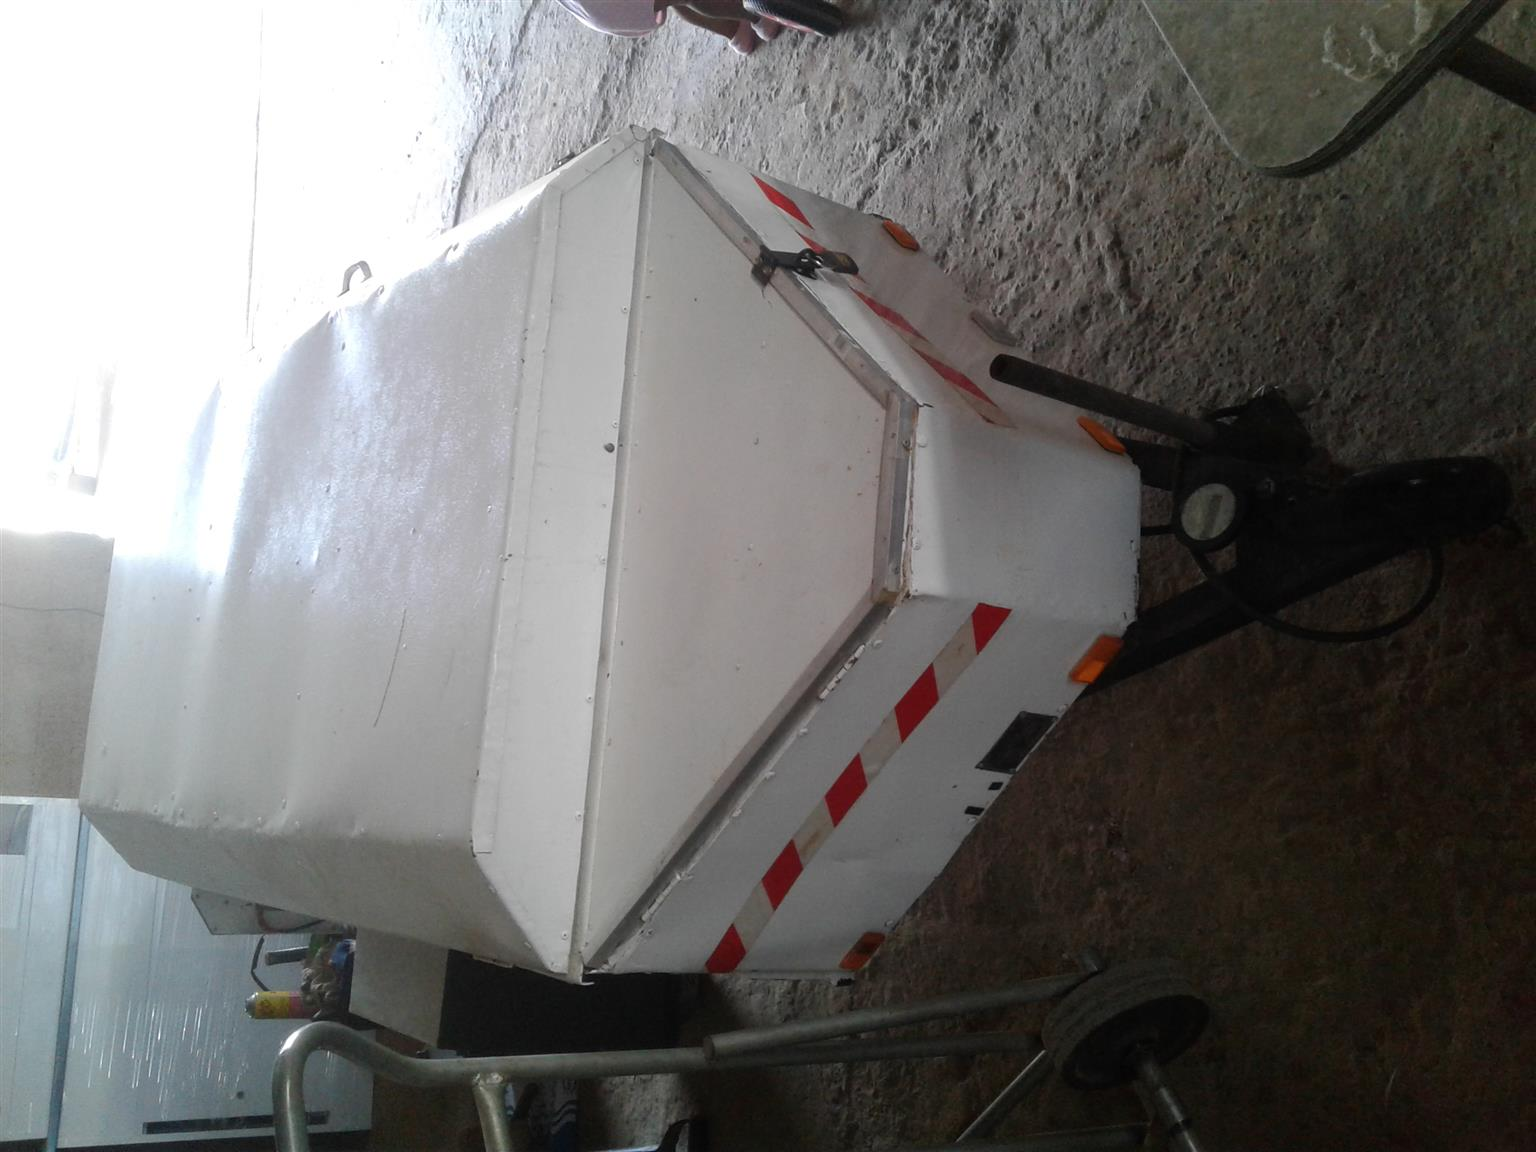 XLT HOLIDAY LUGGAGE TRAILER  GOOD CONDITION WITH PAPERS & LICENCE DISC TILL NOV 2020